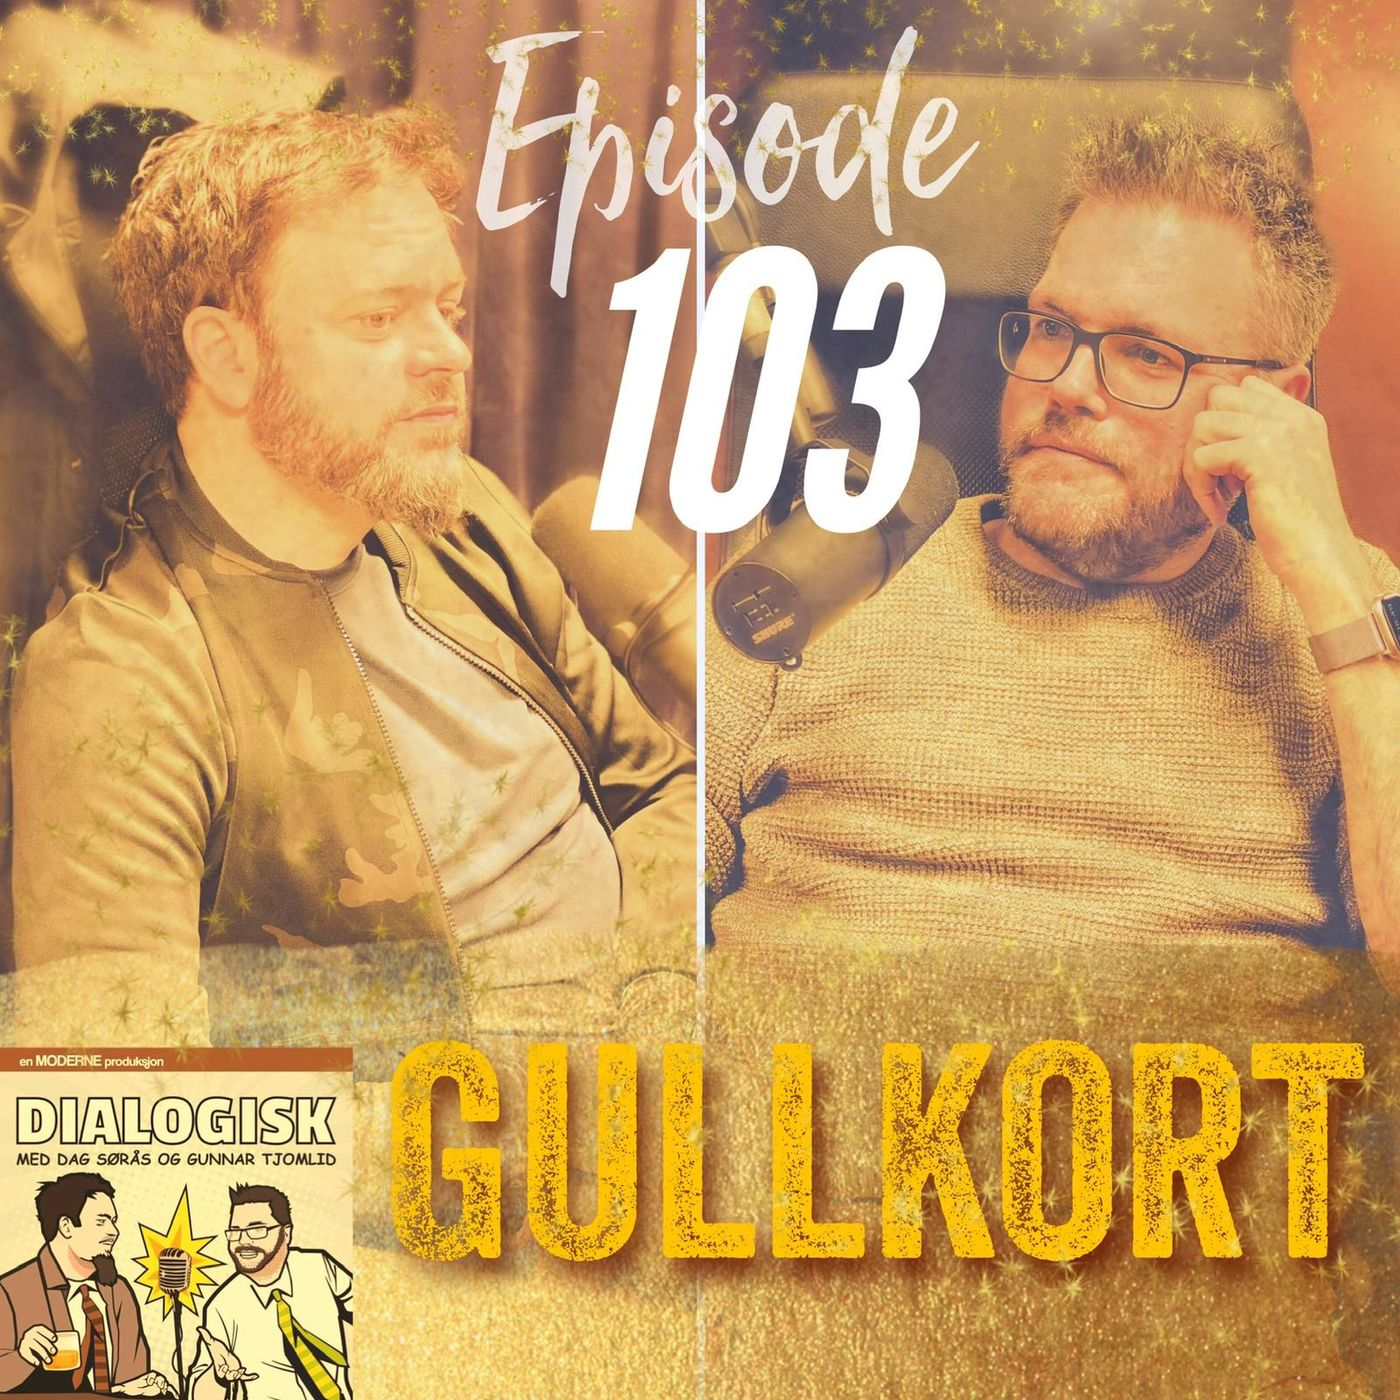 Episode 103: Gullkort